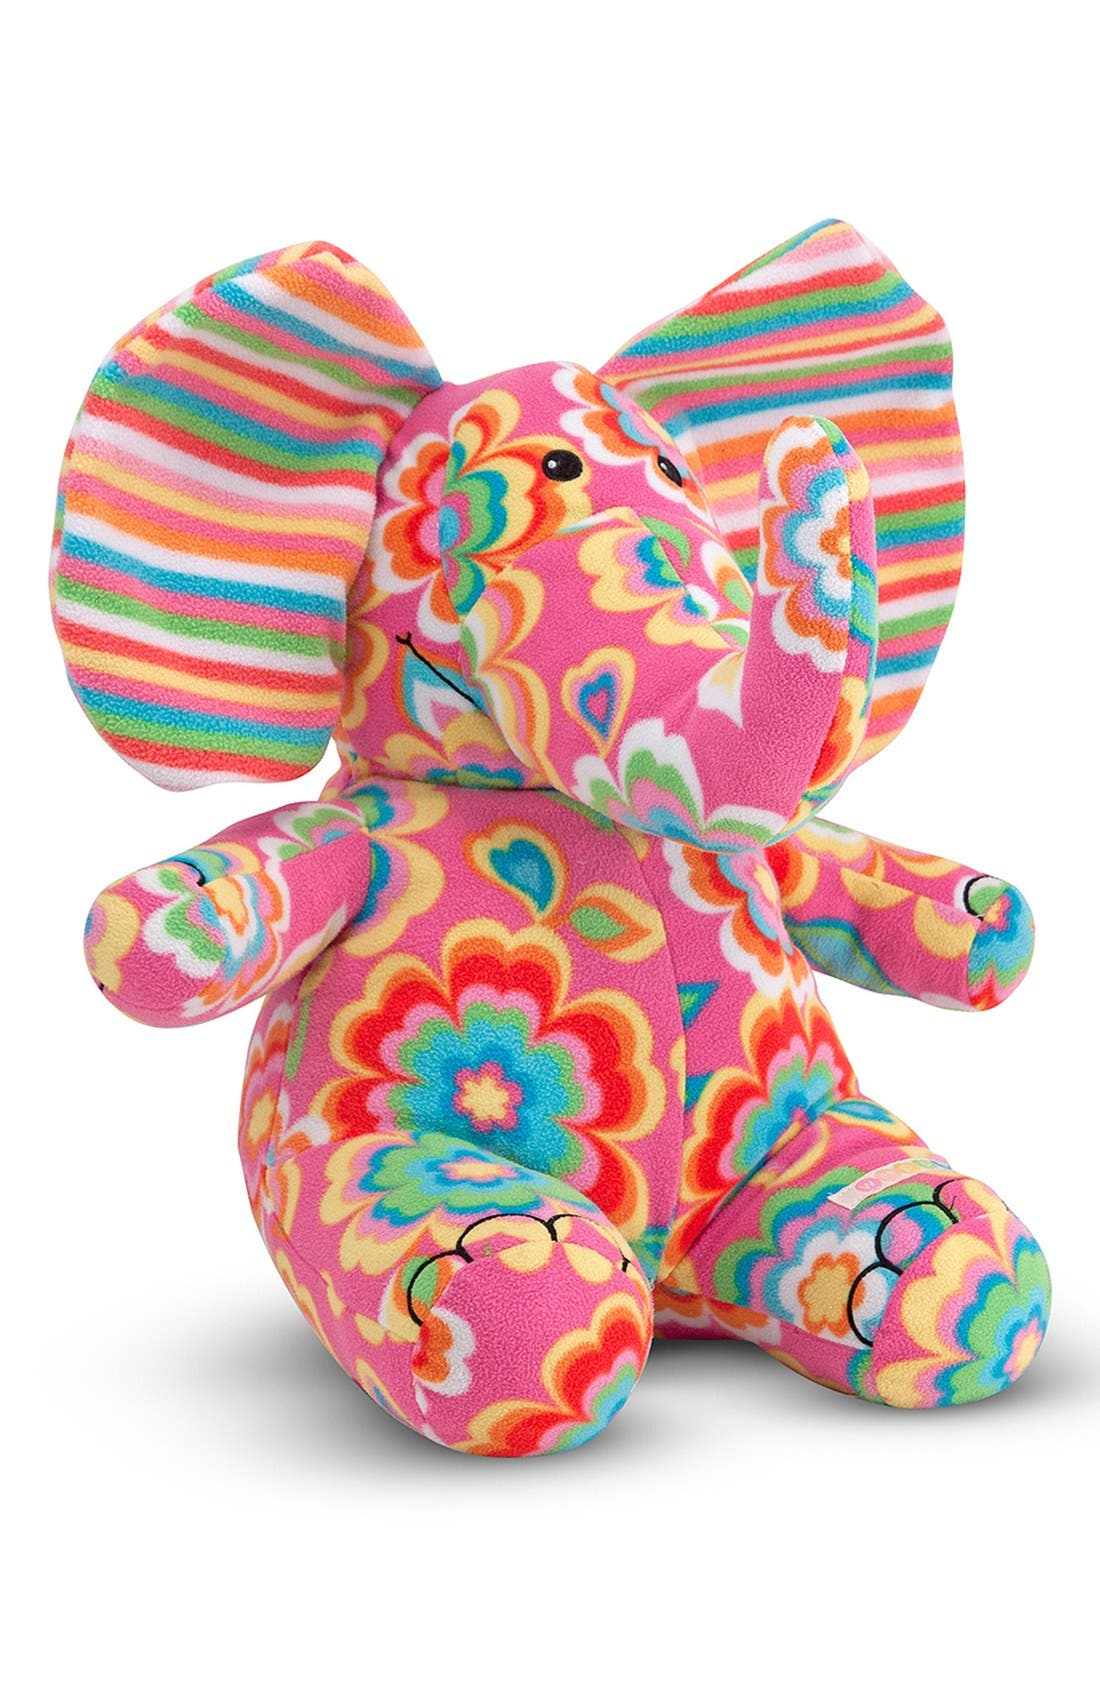 'Beeposh - Sally Elephant' Plush Toy,                         Main,                         color, PINK